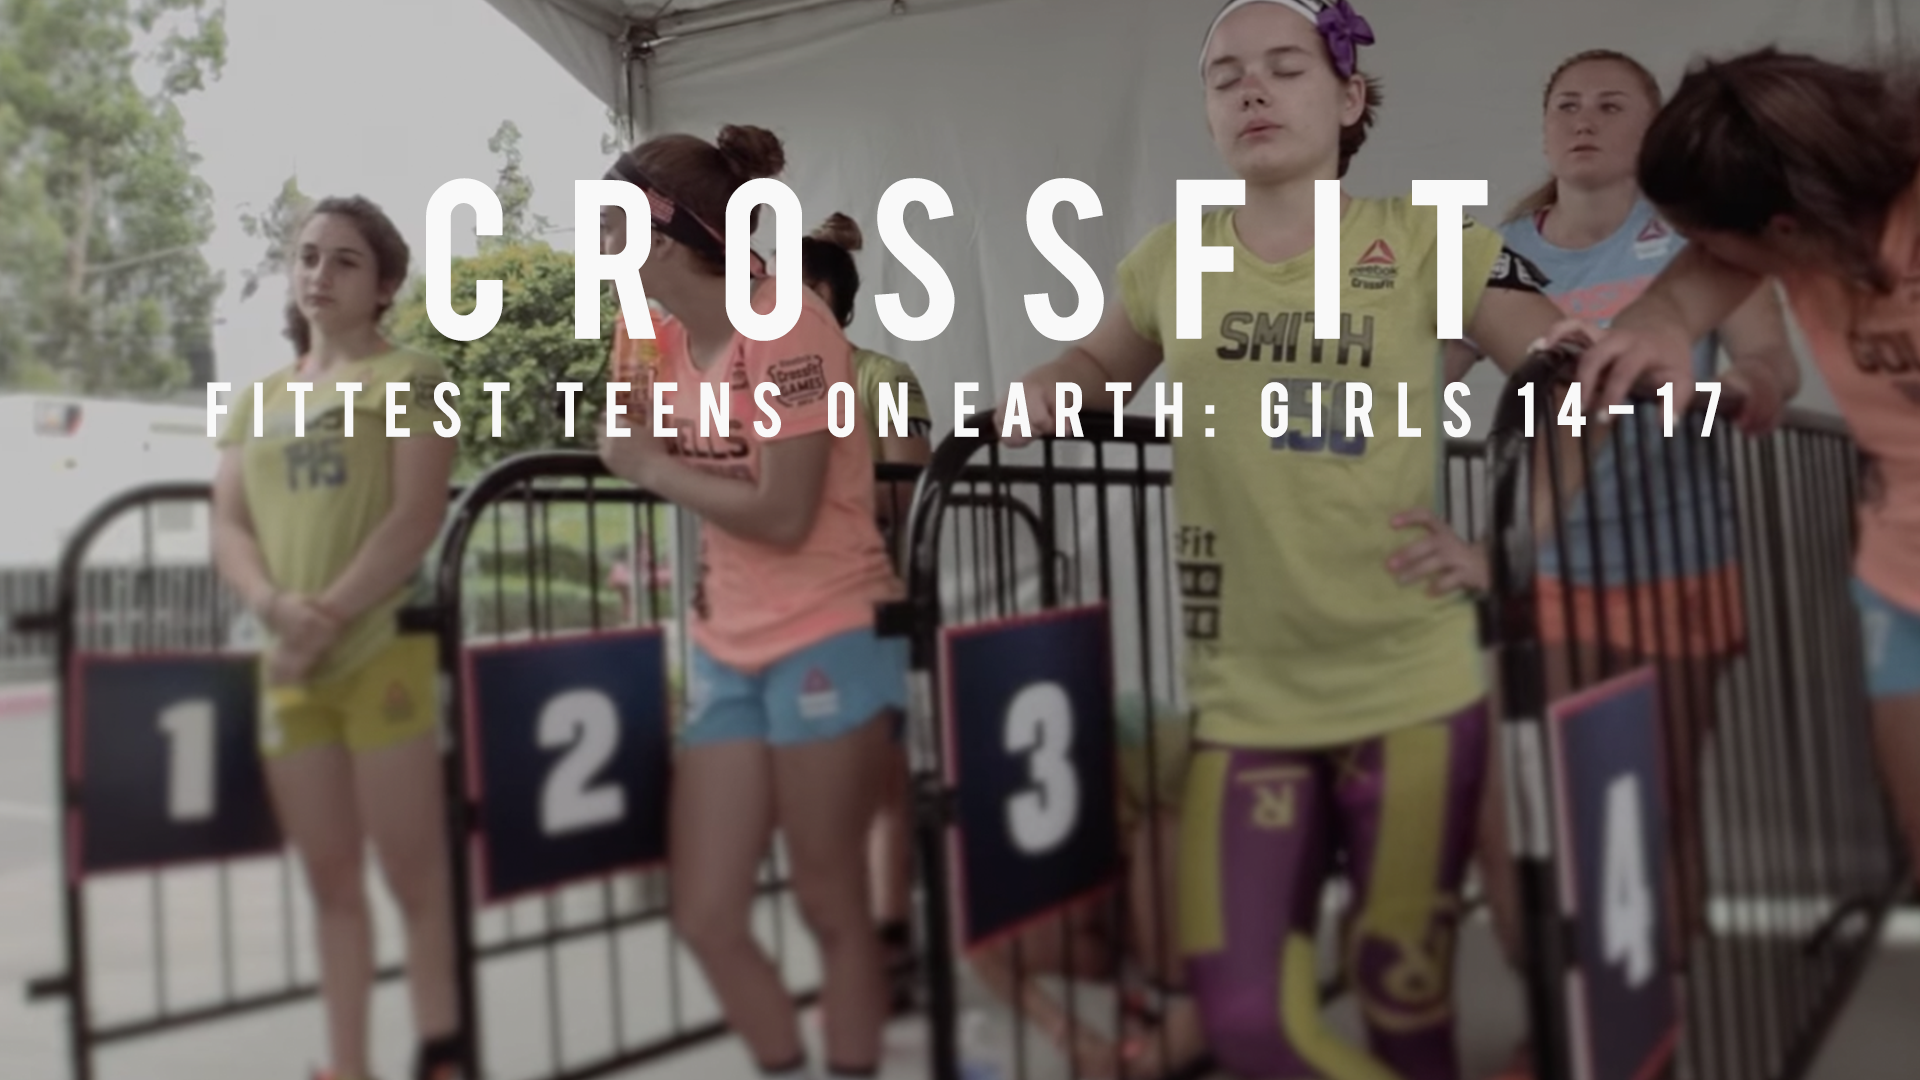 Fittest Teens on Earth: Girls 14-17 Michael McCoy Videography